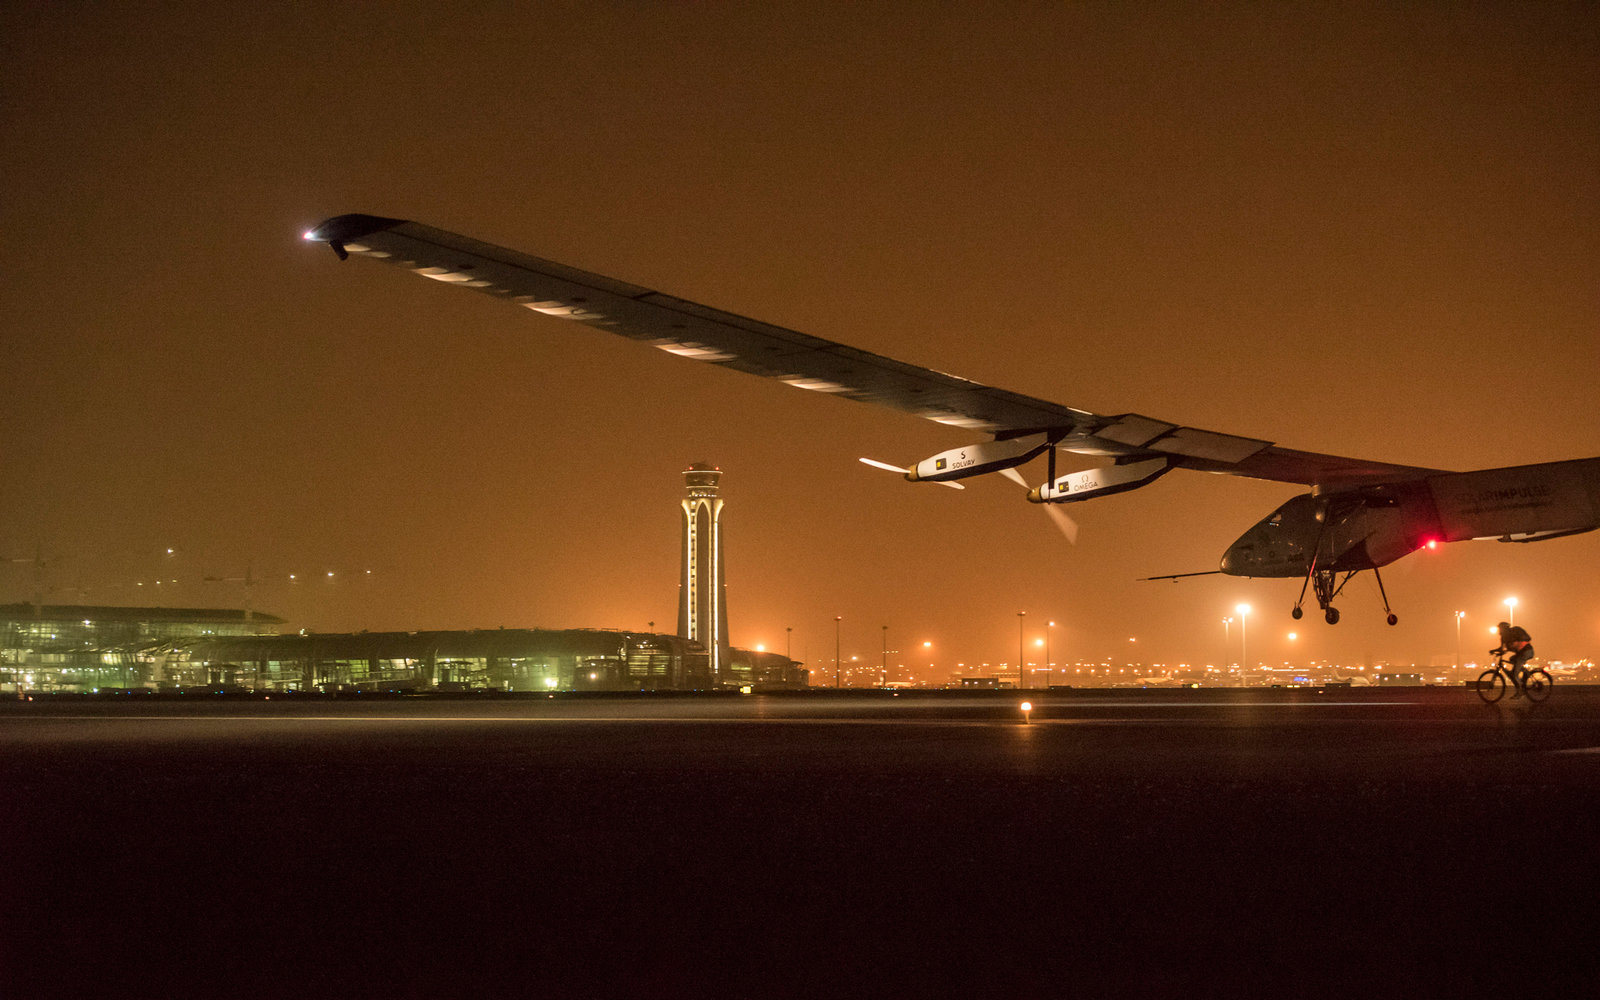 Around the World in a Solar Plane 42,000km Without a Drop of Fuel